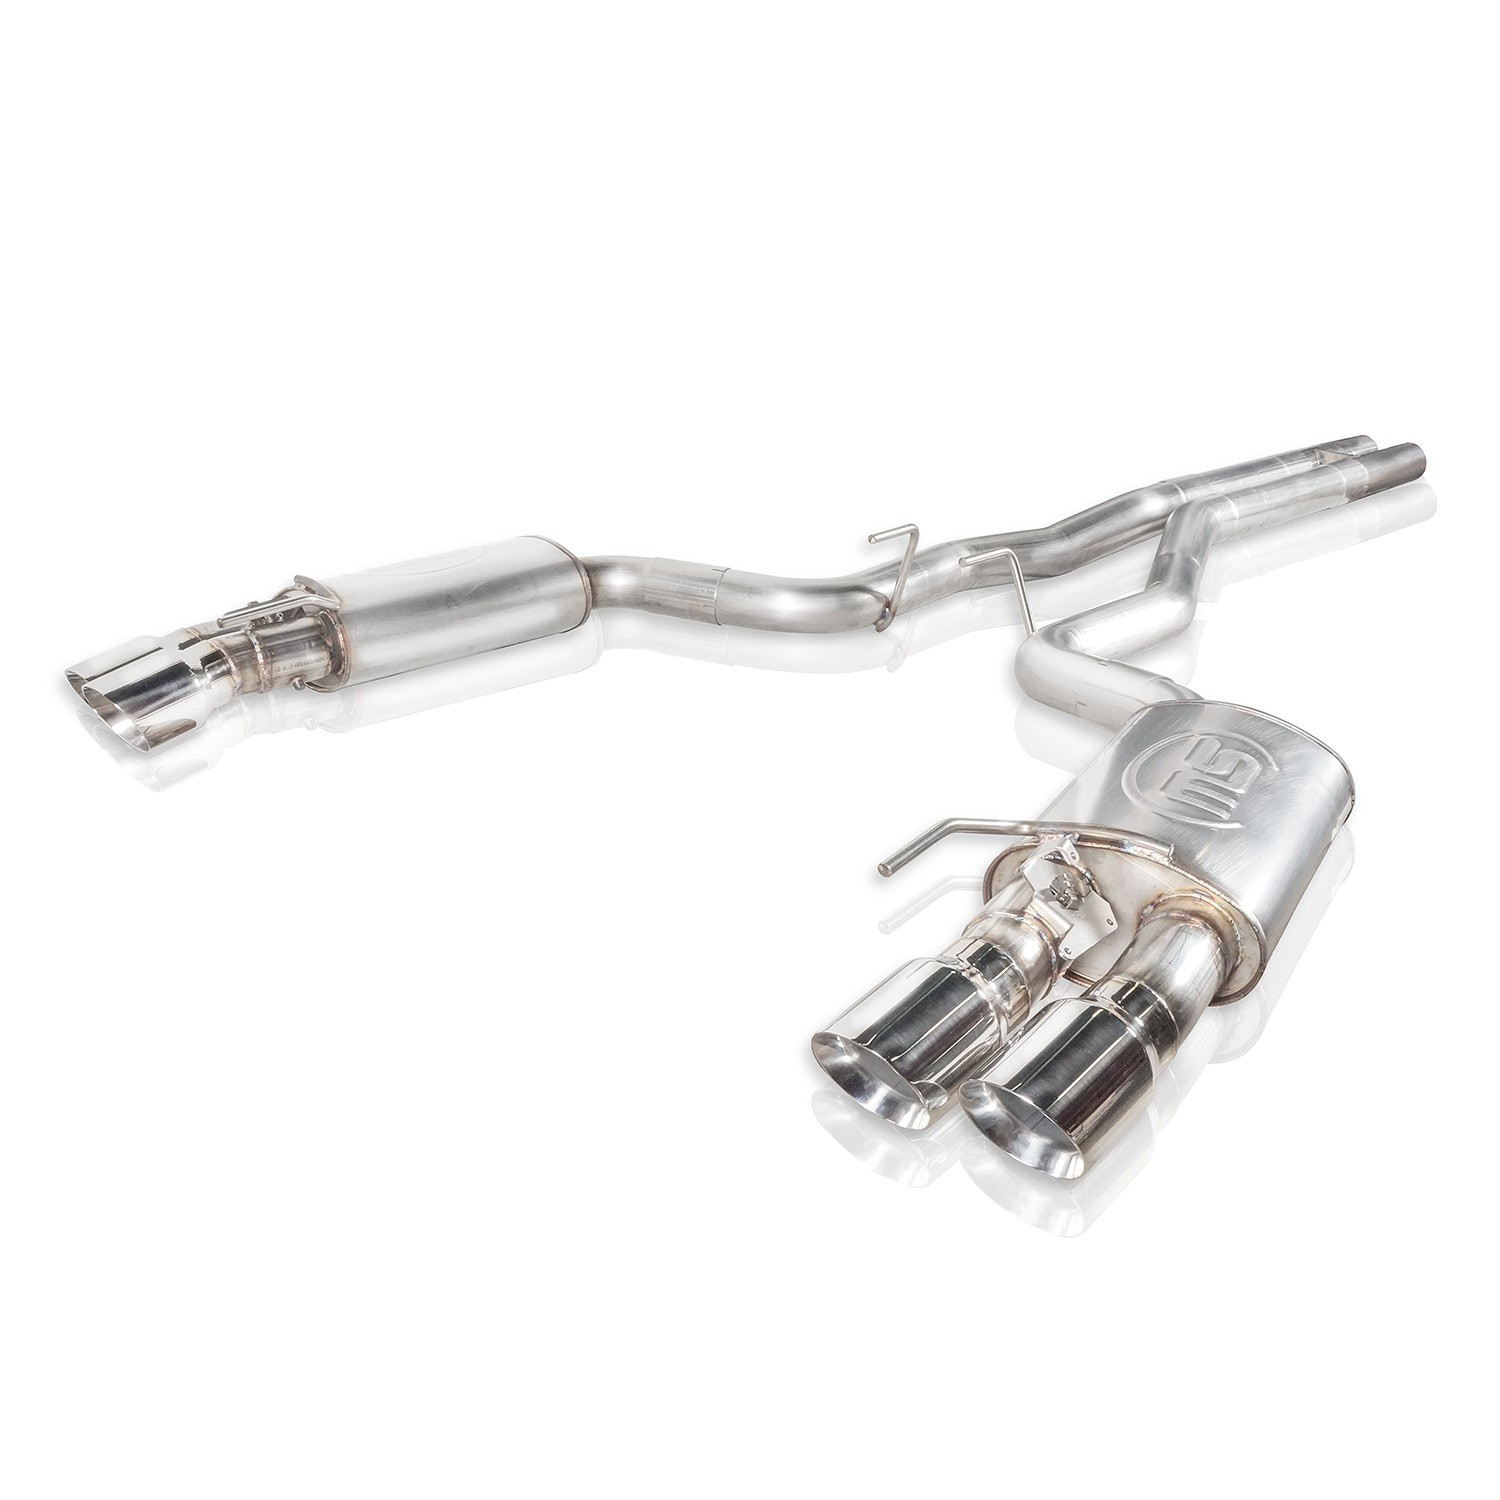 Stainless Works 18+ Ford Mustang GT Redline Cat-Back Performance Connect H-Pipe w/ Active Valves